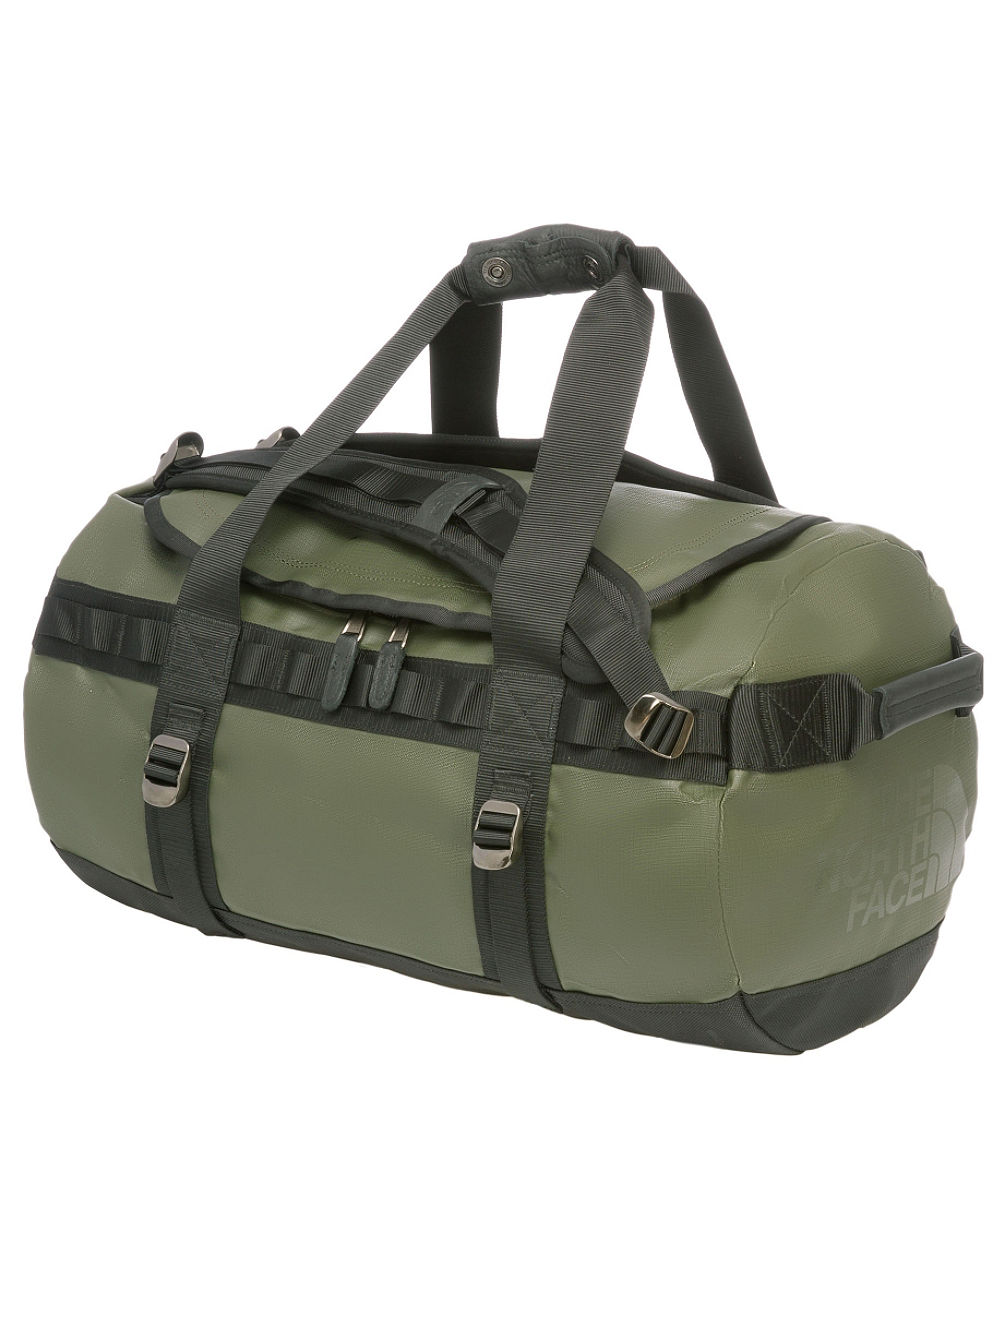 2f4ba4e2e0a Buy THE NORTH FACE Base Camp Duffel - S Special Edition online at ...